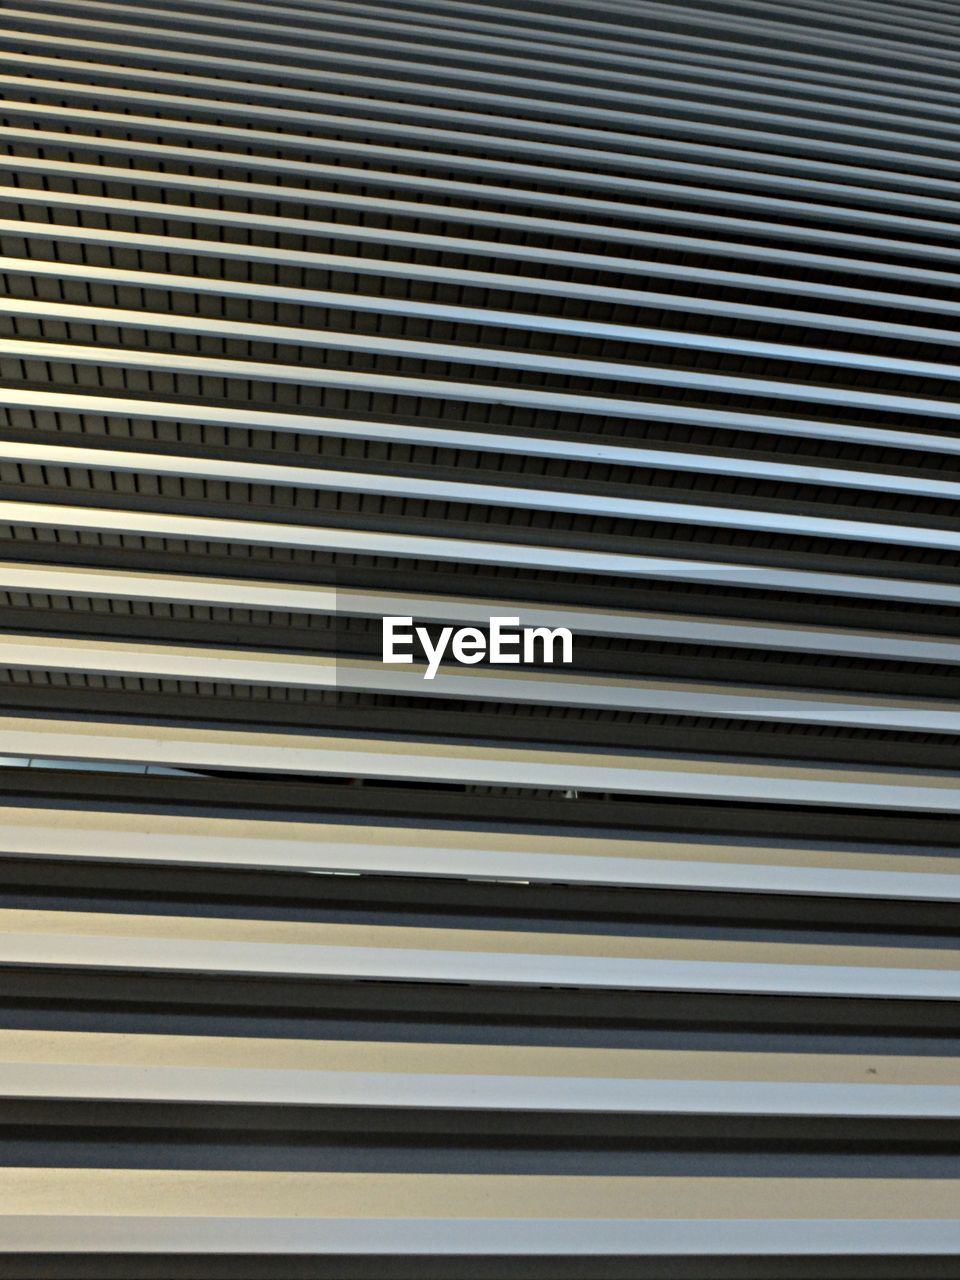 striped, pattern, backgrounds, metal, textured, steel, abstract, corrugated iron, aluminum, full frame, no people, outdoors, close-up, day, zebra, brushed metal